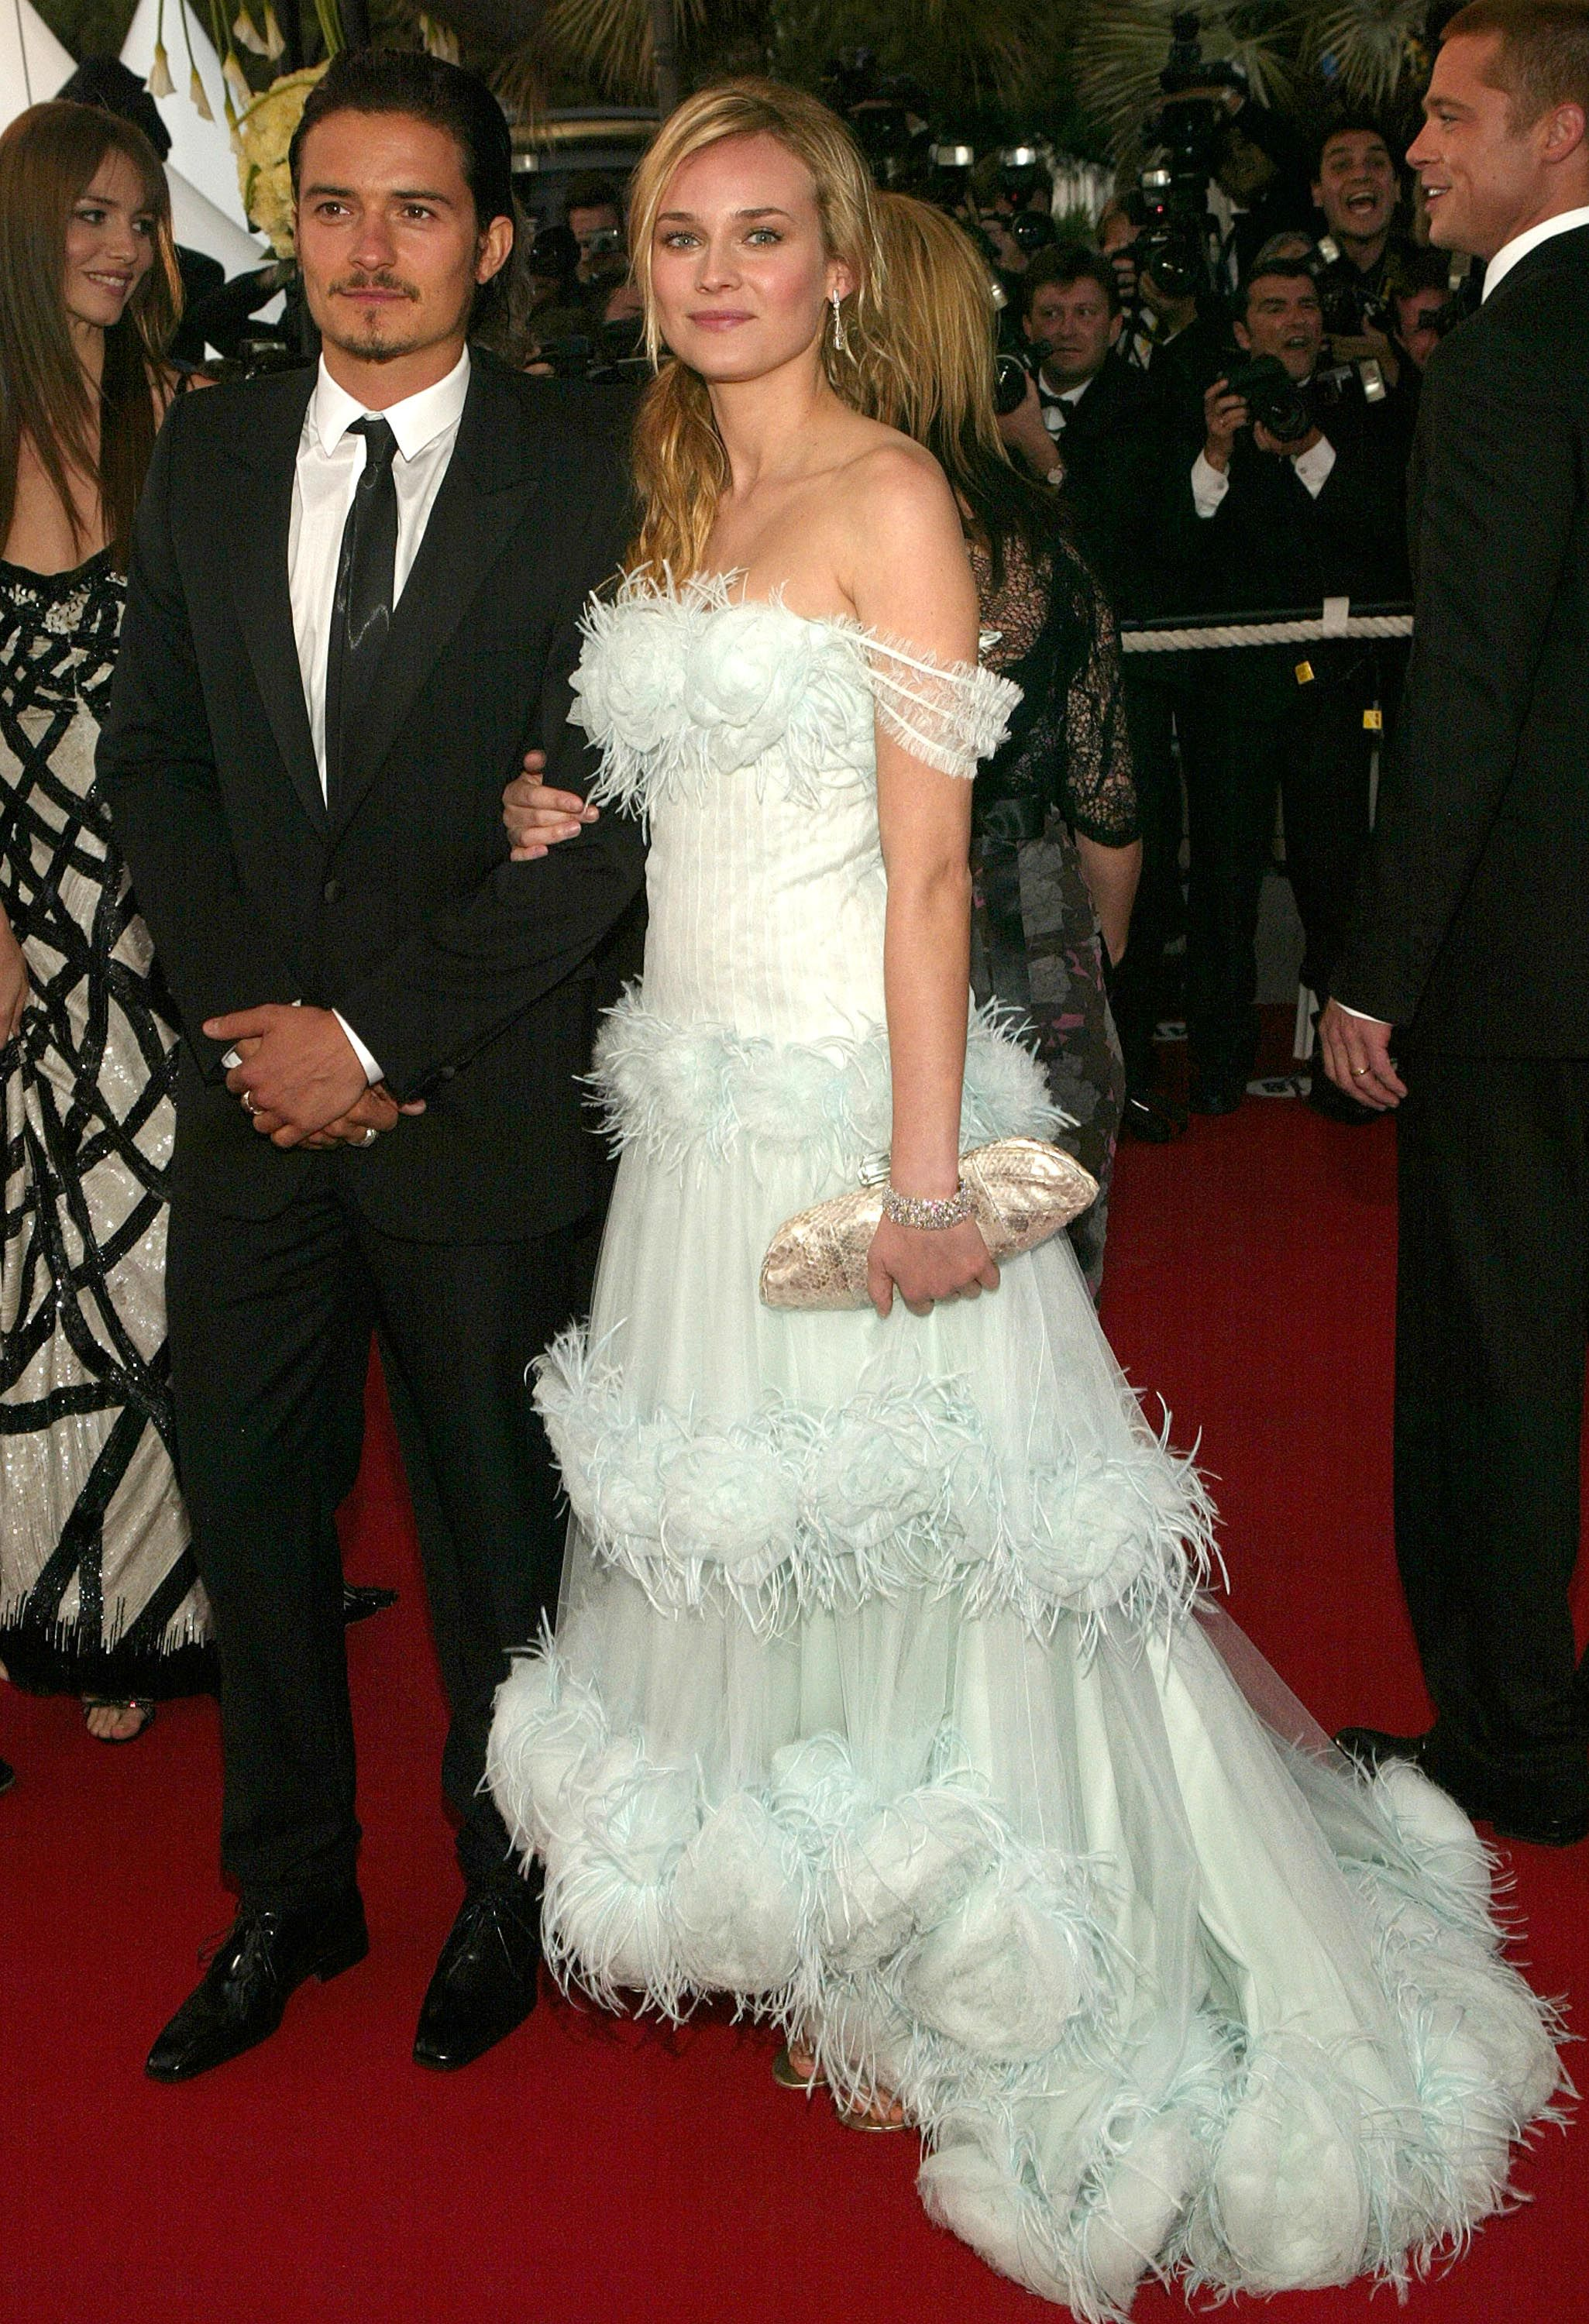 Diane Kruger In Chanel 2010 The Most Stunning Cannes Film Festival Gowns Of All